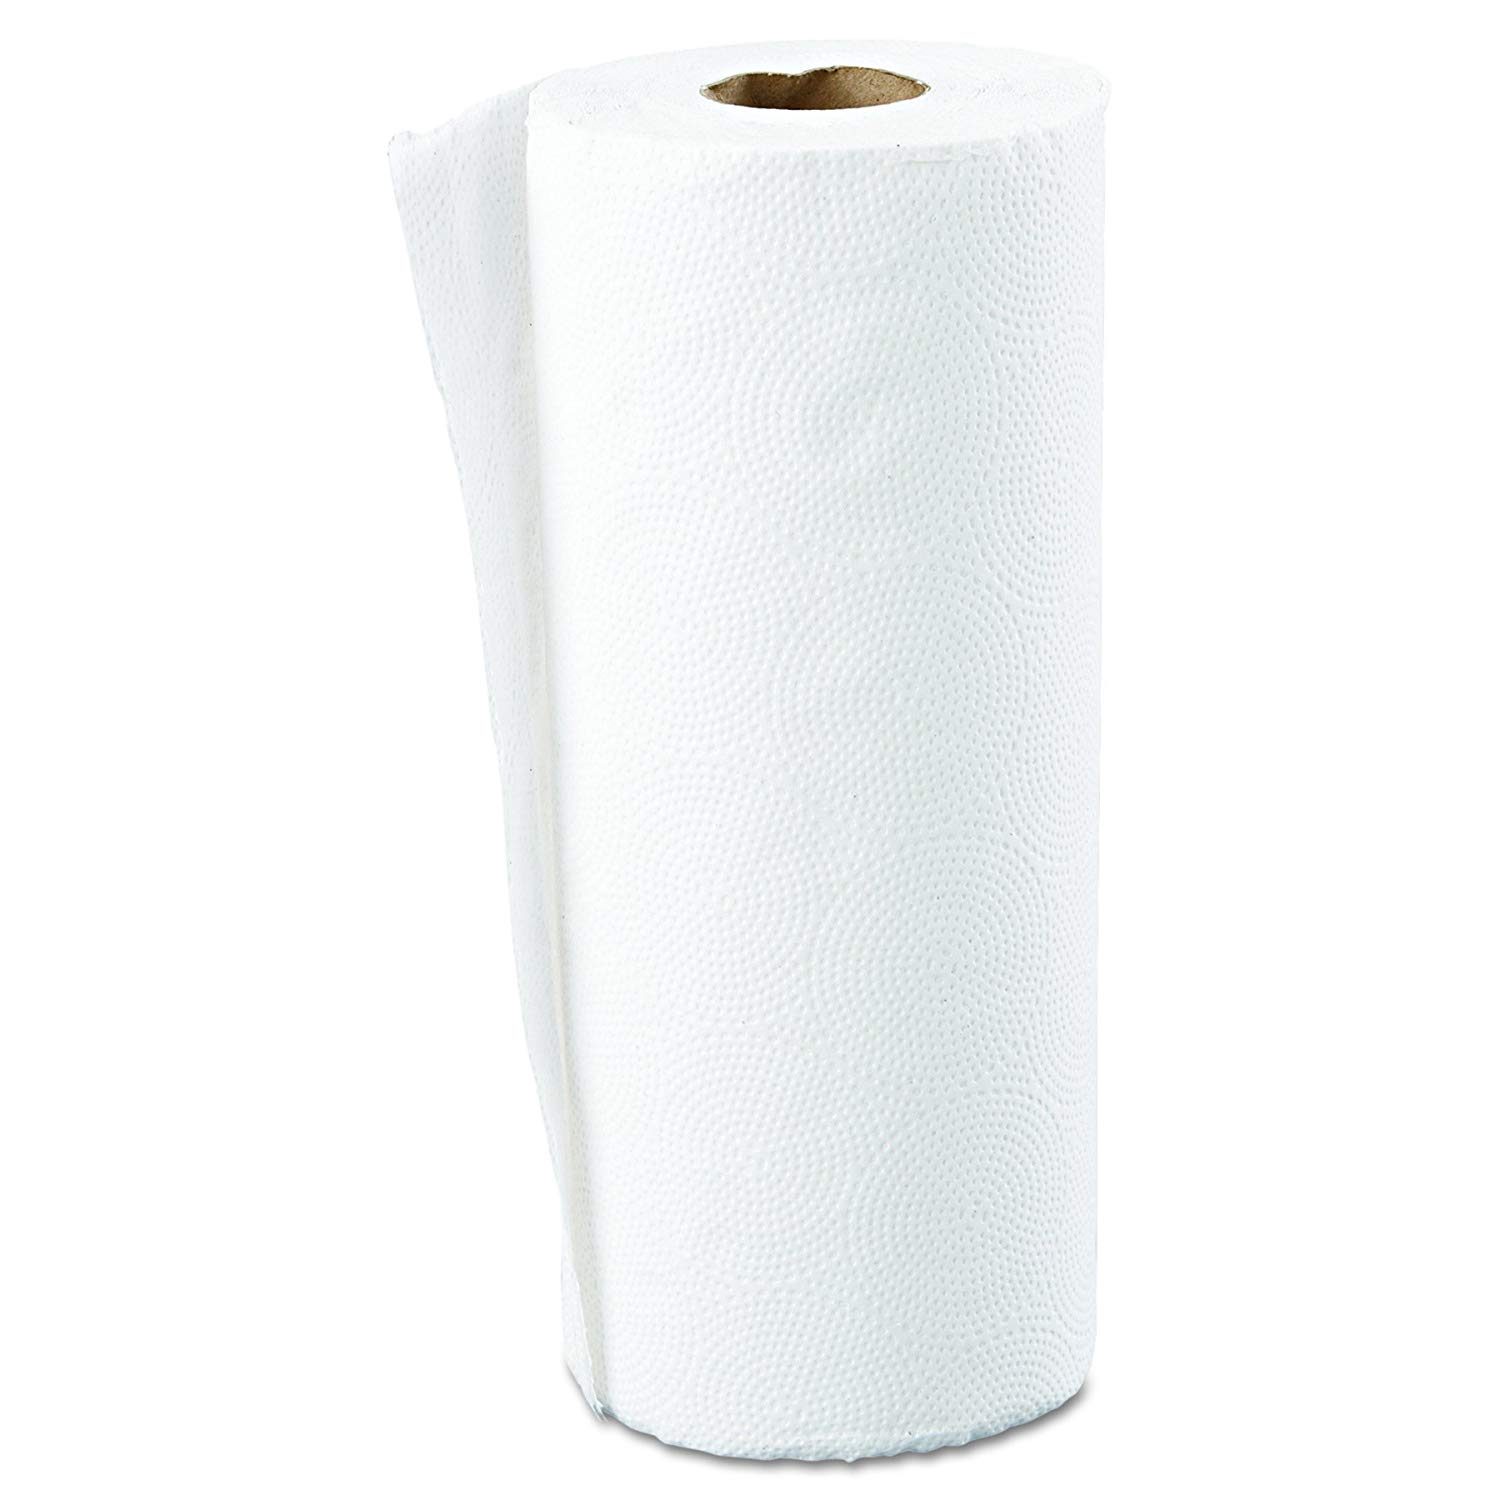 18-009 - Atlas Kitchen Roll Towel (85 Sheets/Roll) 30ct